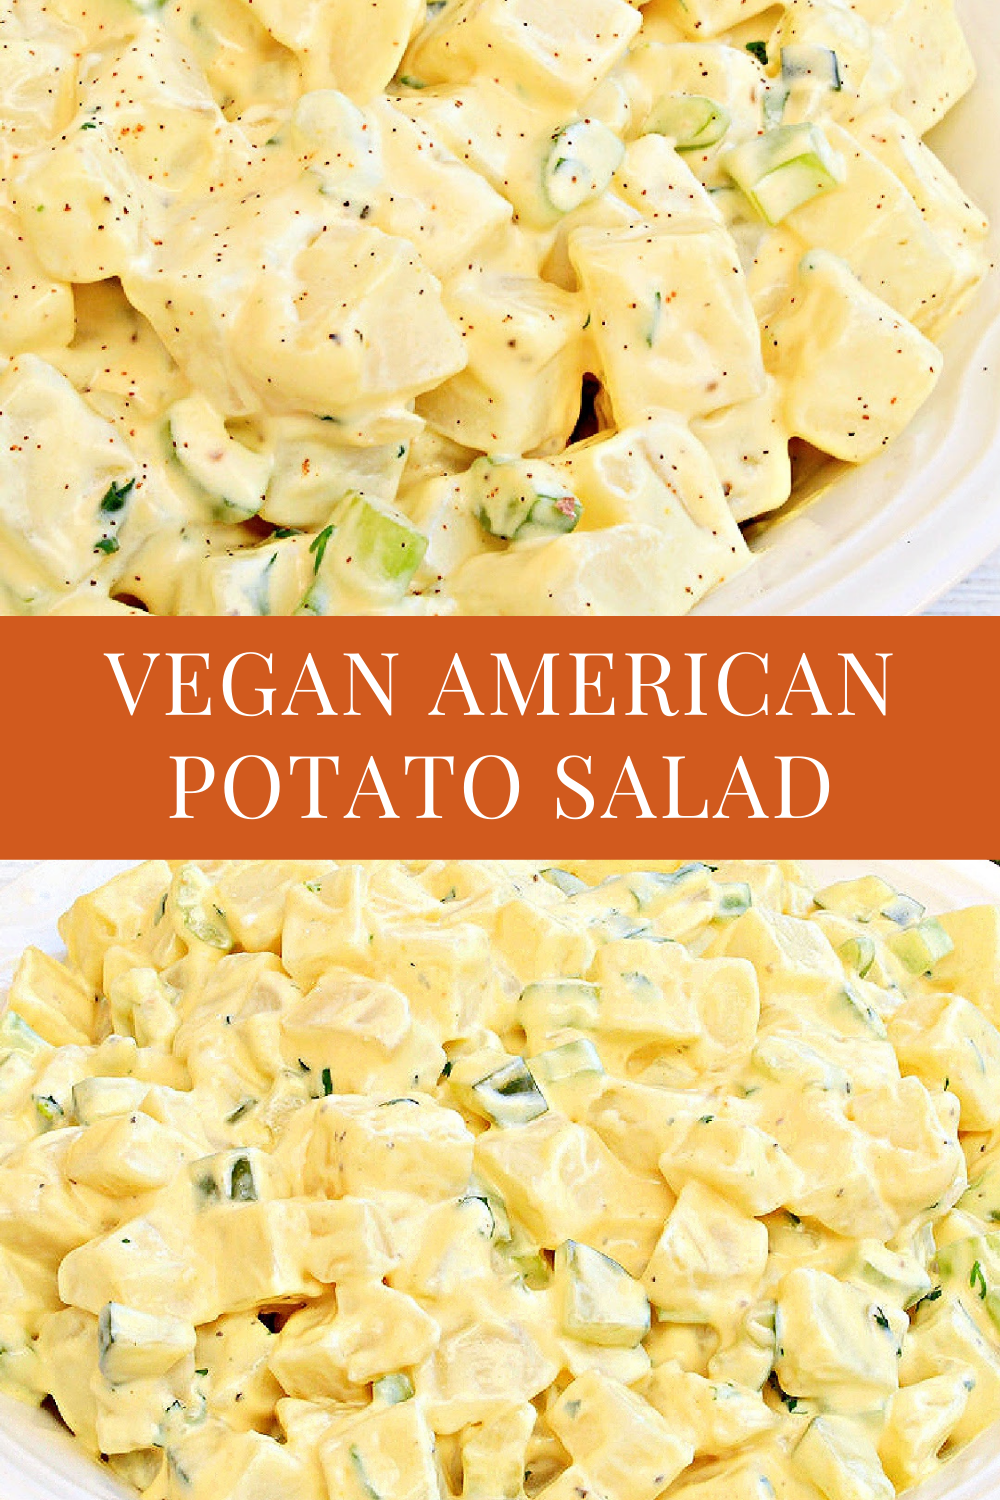 This vegan American-style potato salad is creamy, tangy, and perfect for summertime picnics, potlucks, and the 4th of July! via @thiswifecooks